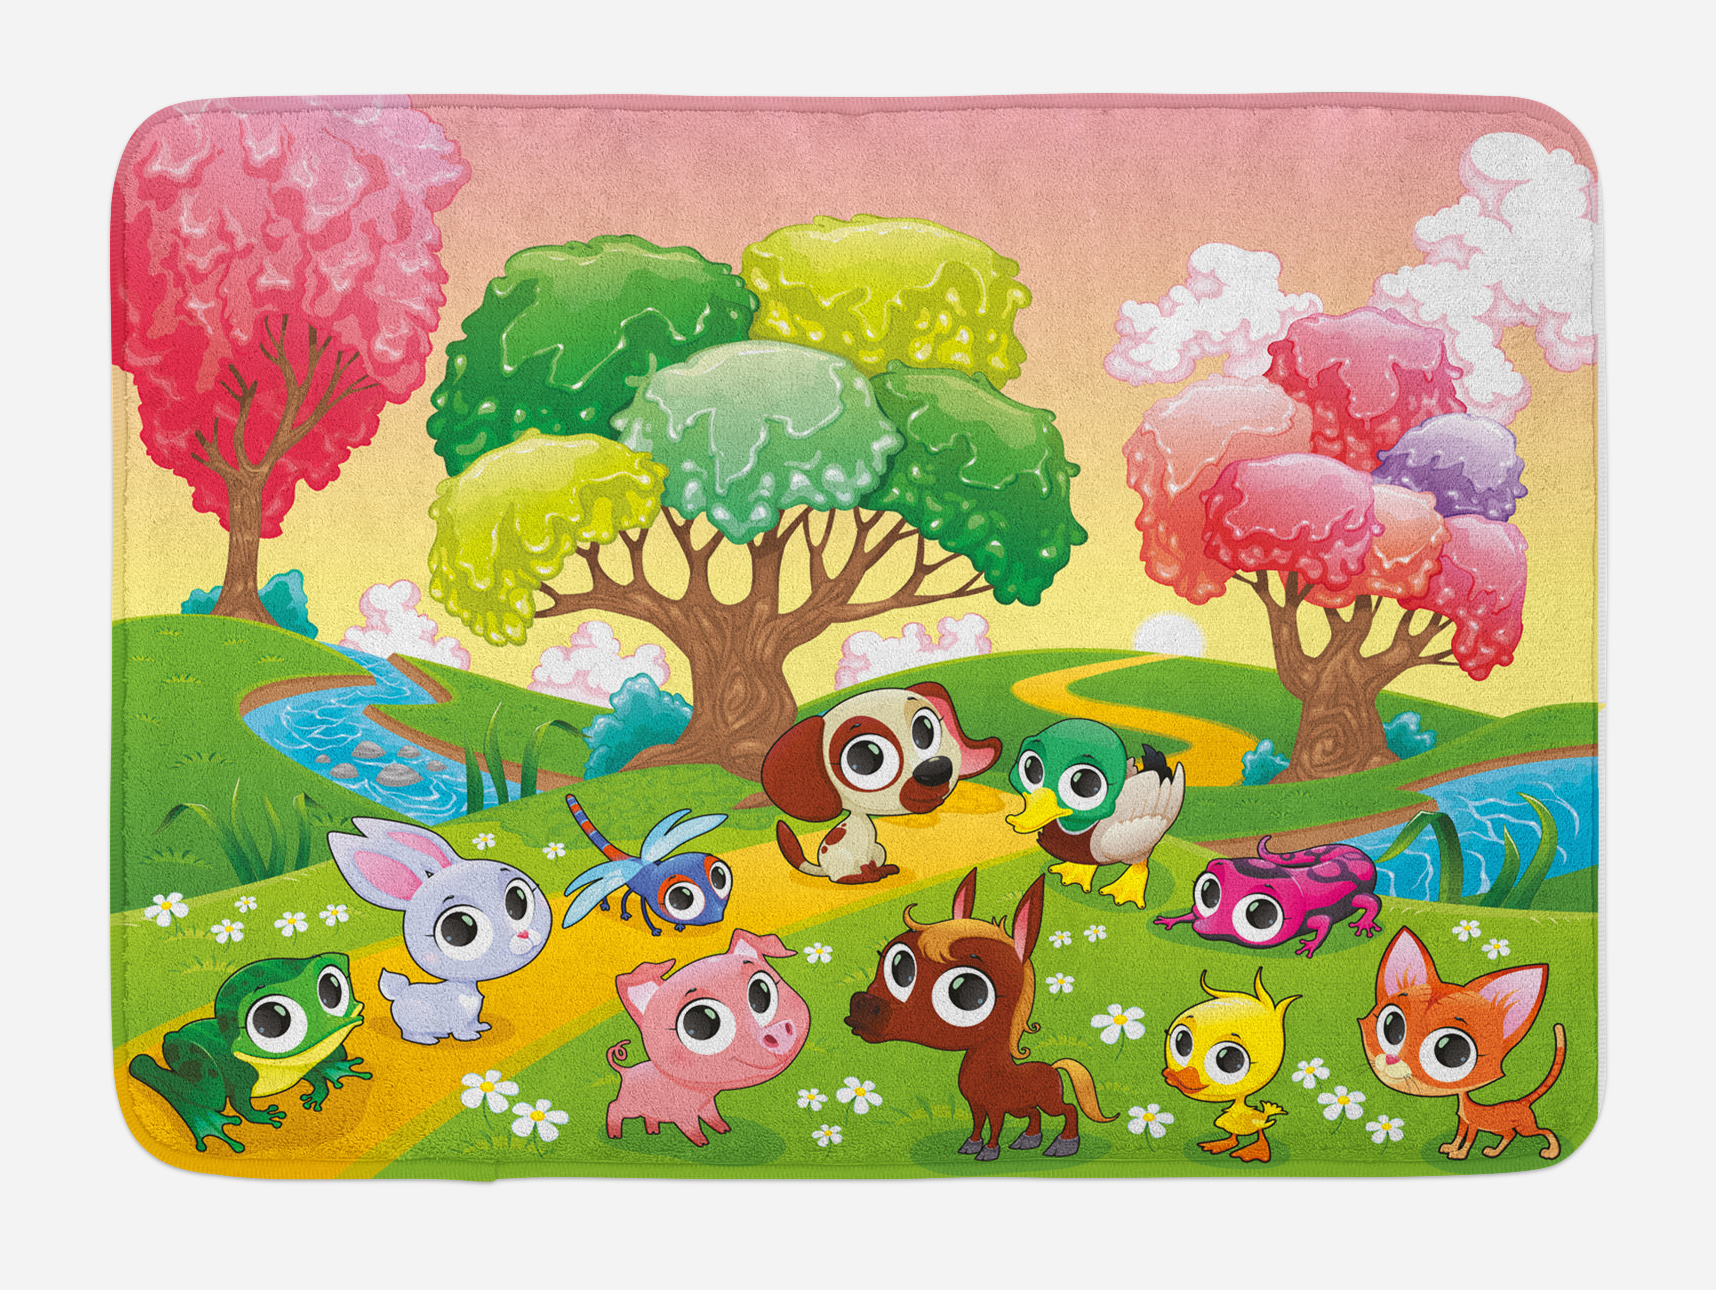 Cartoon Bath Mat, Kids Nursery Theme Animals in the Forest with Nice Flowers Illustration... by 3decor llc